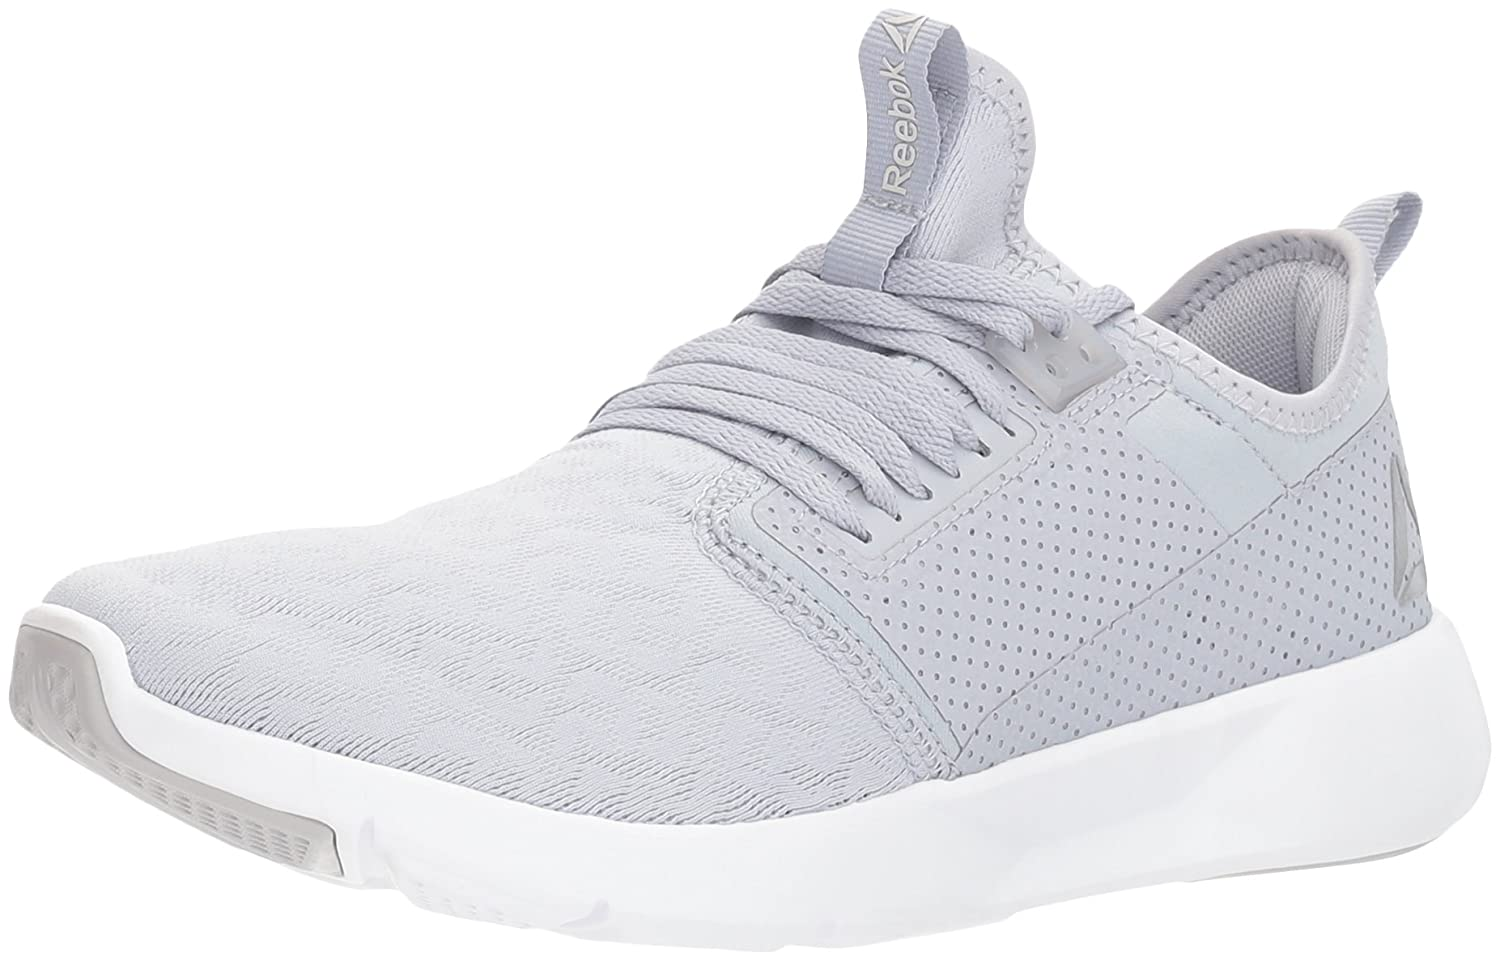 Reebok Women's Plus Lite 2.0 GF Sneaker B073XJTYJH 10.5 B(M) US|Gf - Cloud Grey/Porcelain/Silver Metallic/White